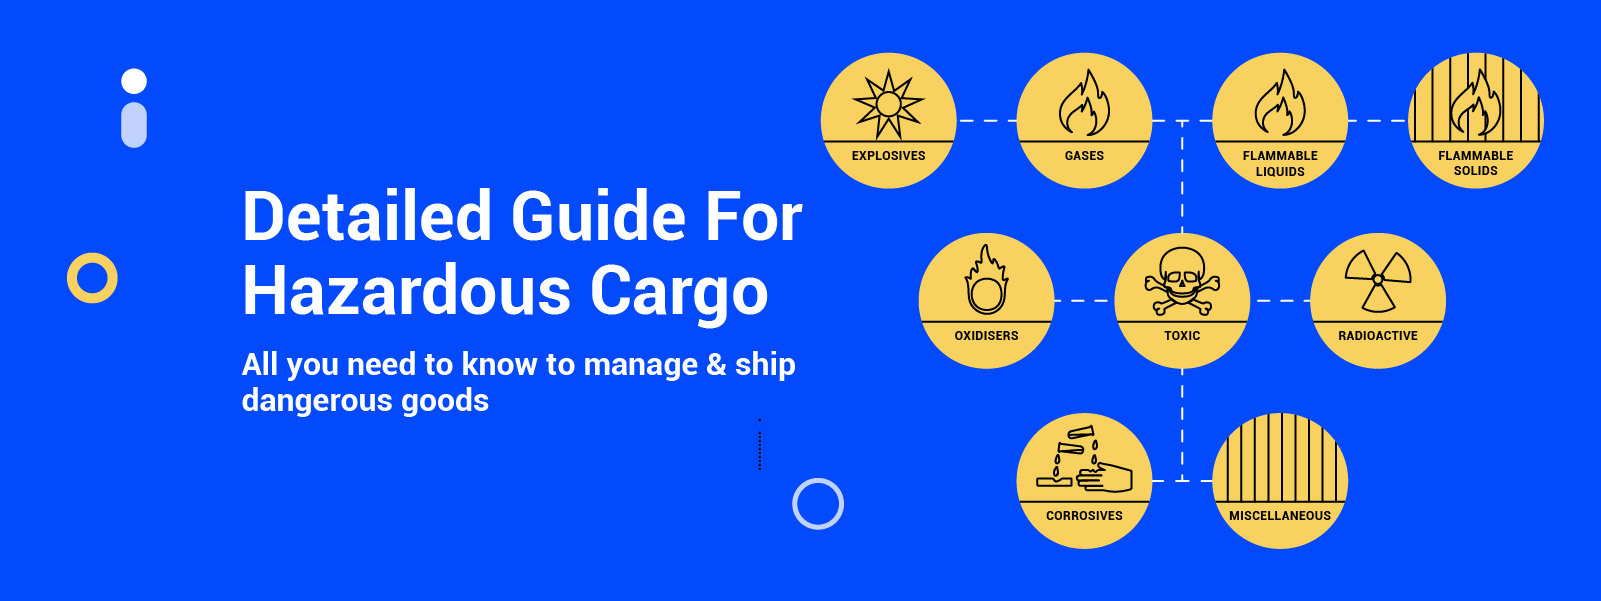 Hazardous Cargo: Guide to Dangerous Goods and How to Ship them Safely